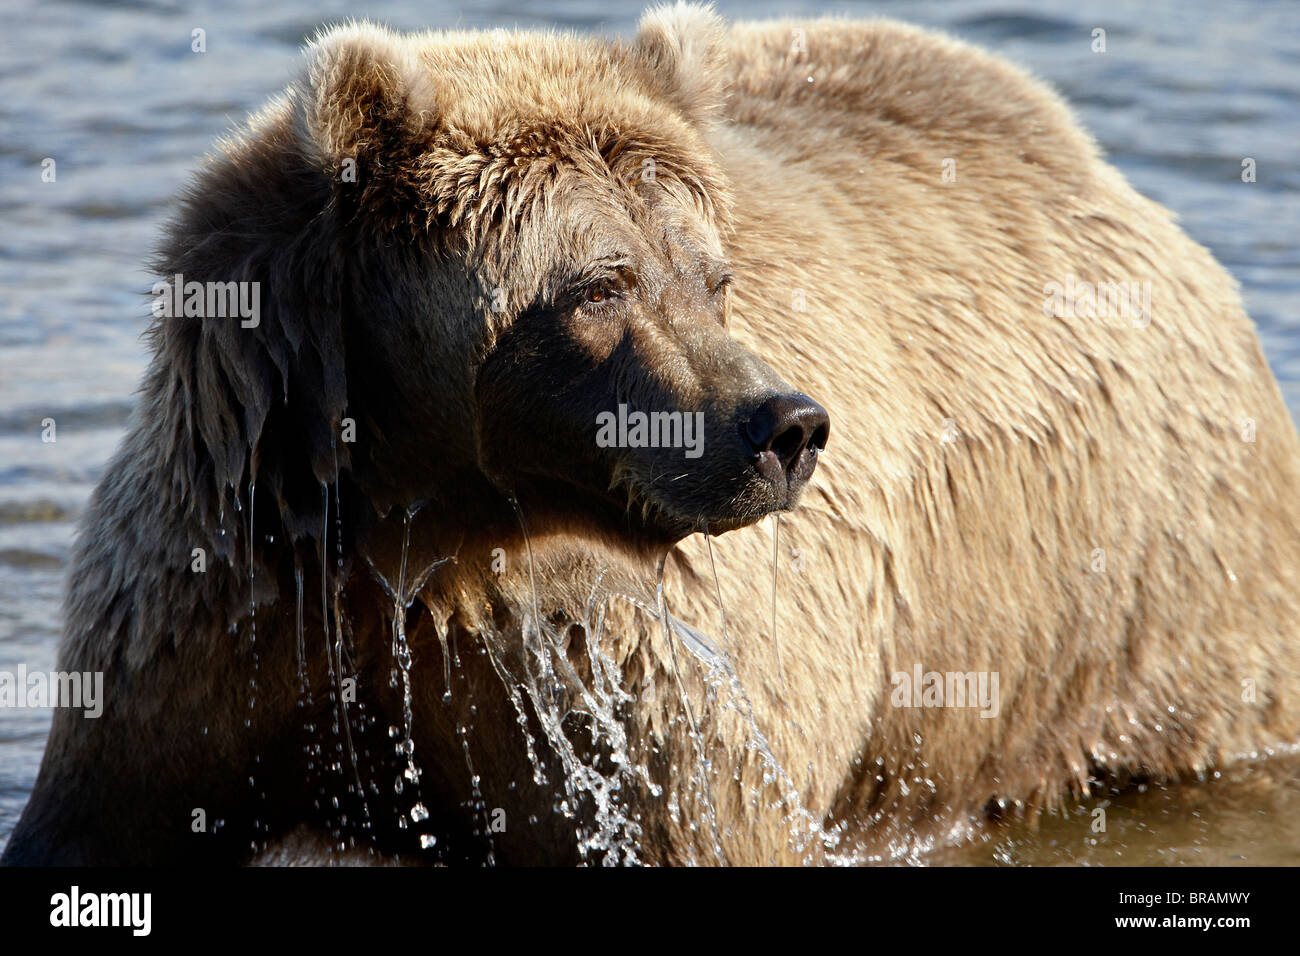 Brown Bear (Ursus arctos horribilis) in Moraine Creek, Katmai National Park and Preserve, Alaska, United States - Stock Image